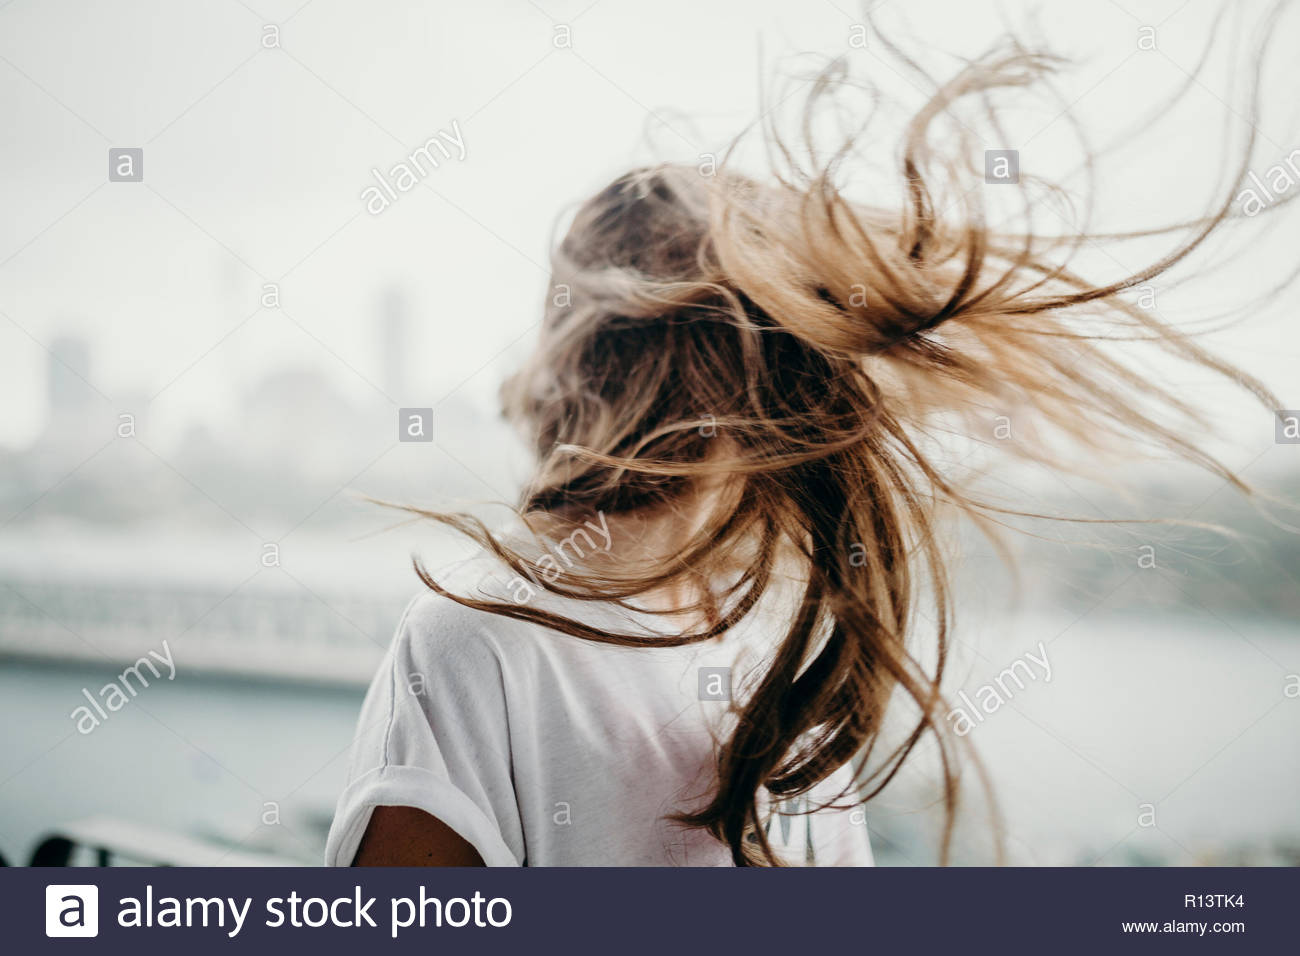 Action shot of a girl tossing her hair back Stock Photo